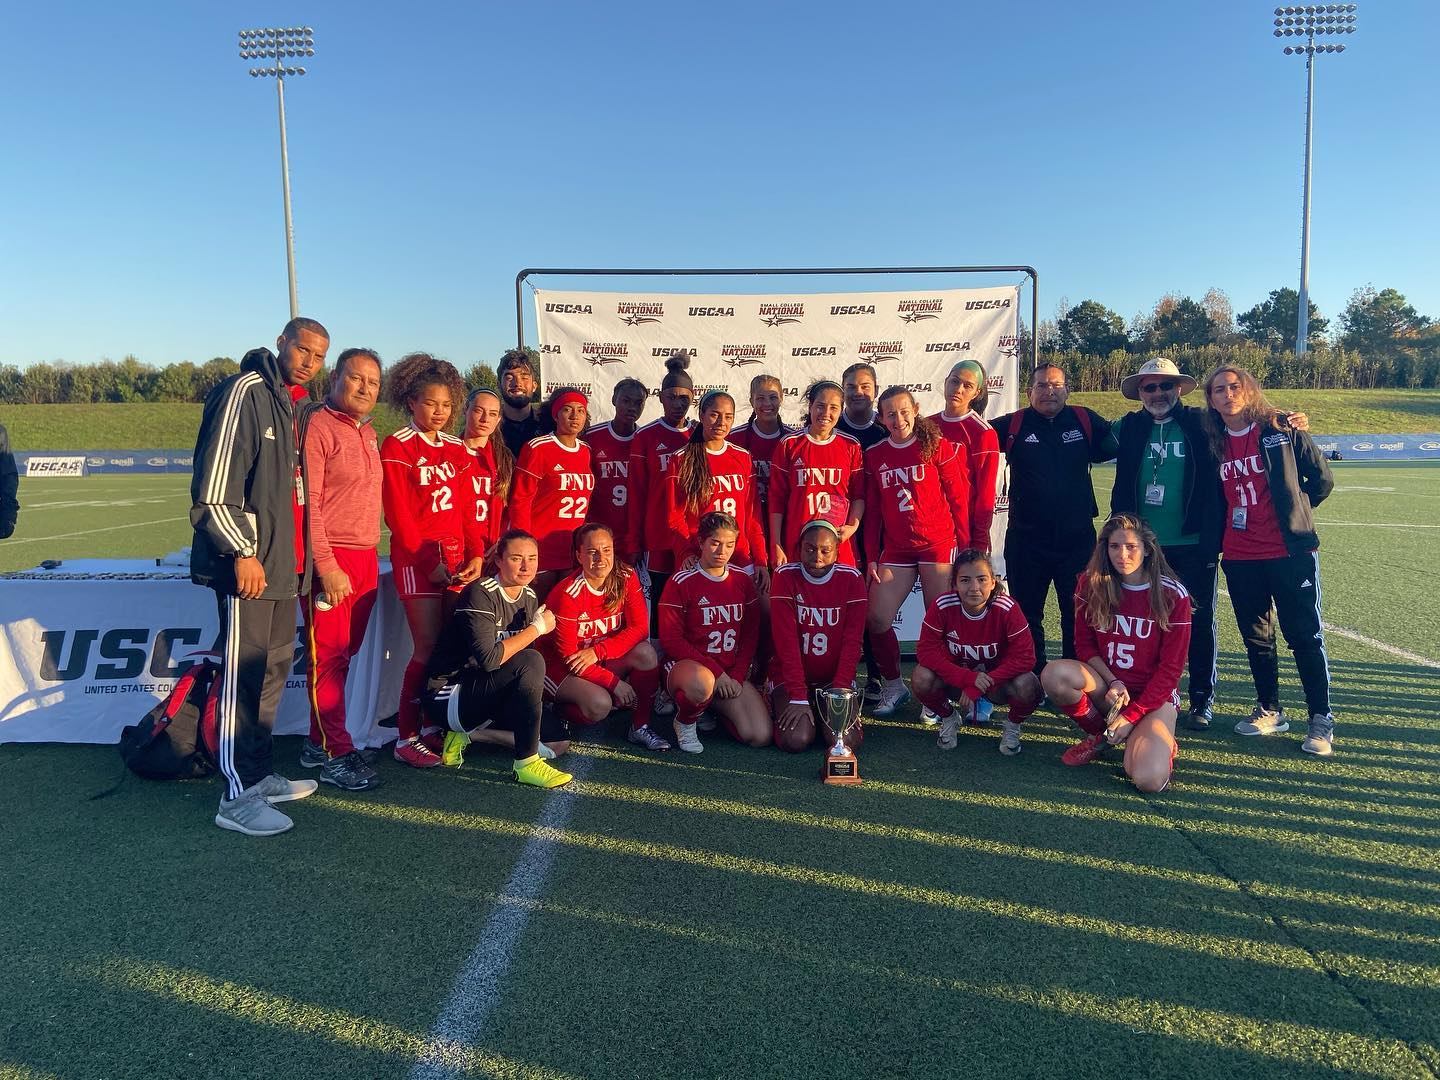 Women's soccer team with the runner up trophy